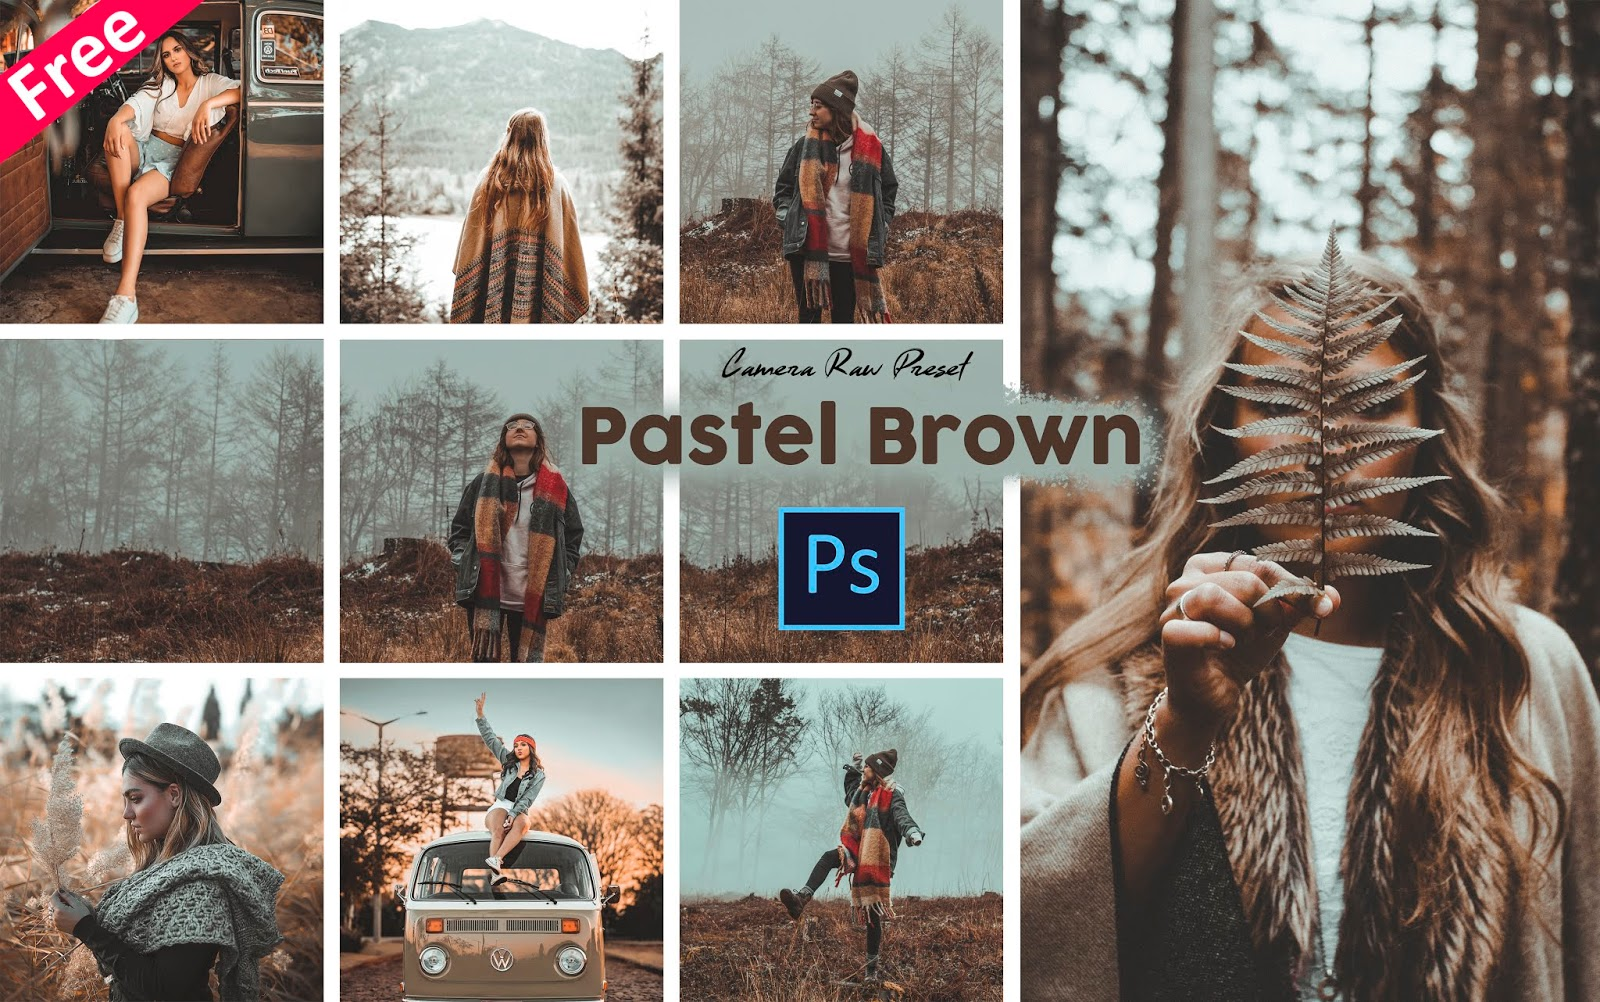 Pastel Brown Tone Camera Raw Presets for Free | How to Make Pastel Brown Tone Effect to Photos in Photoshop cc